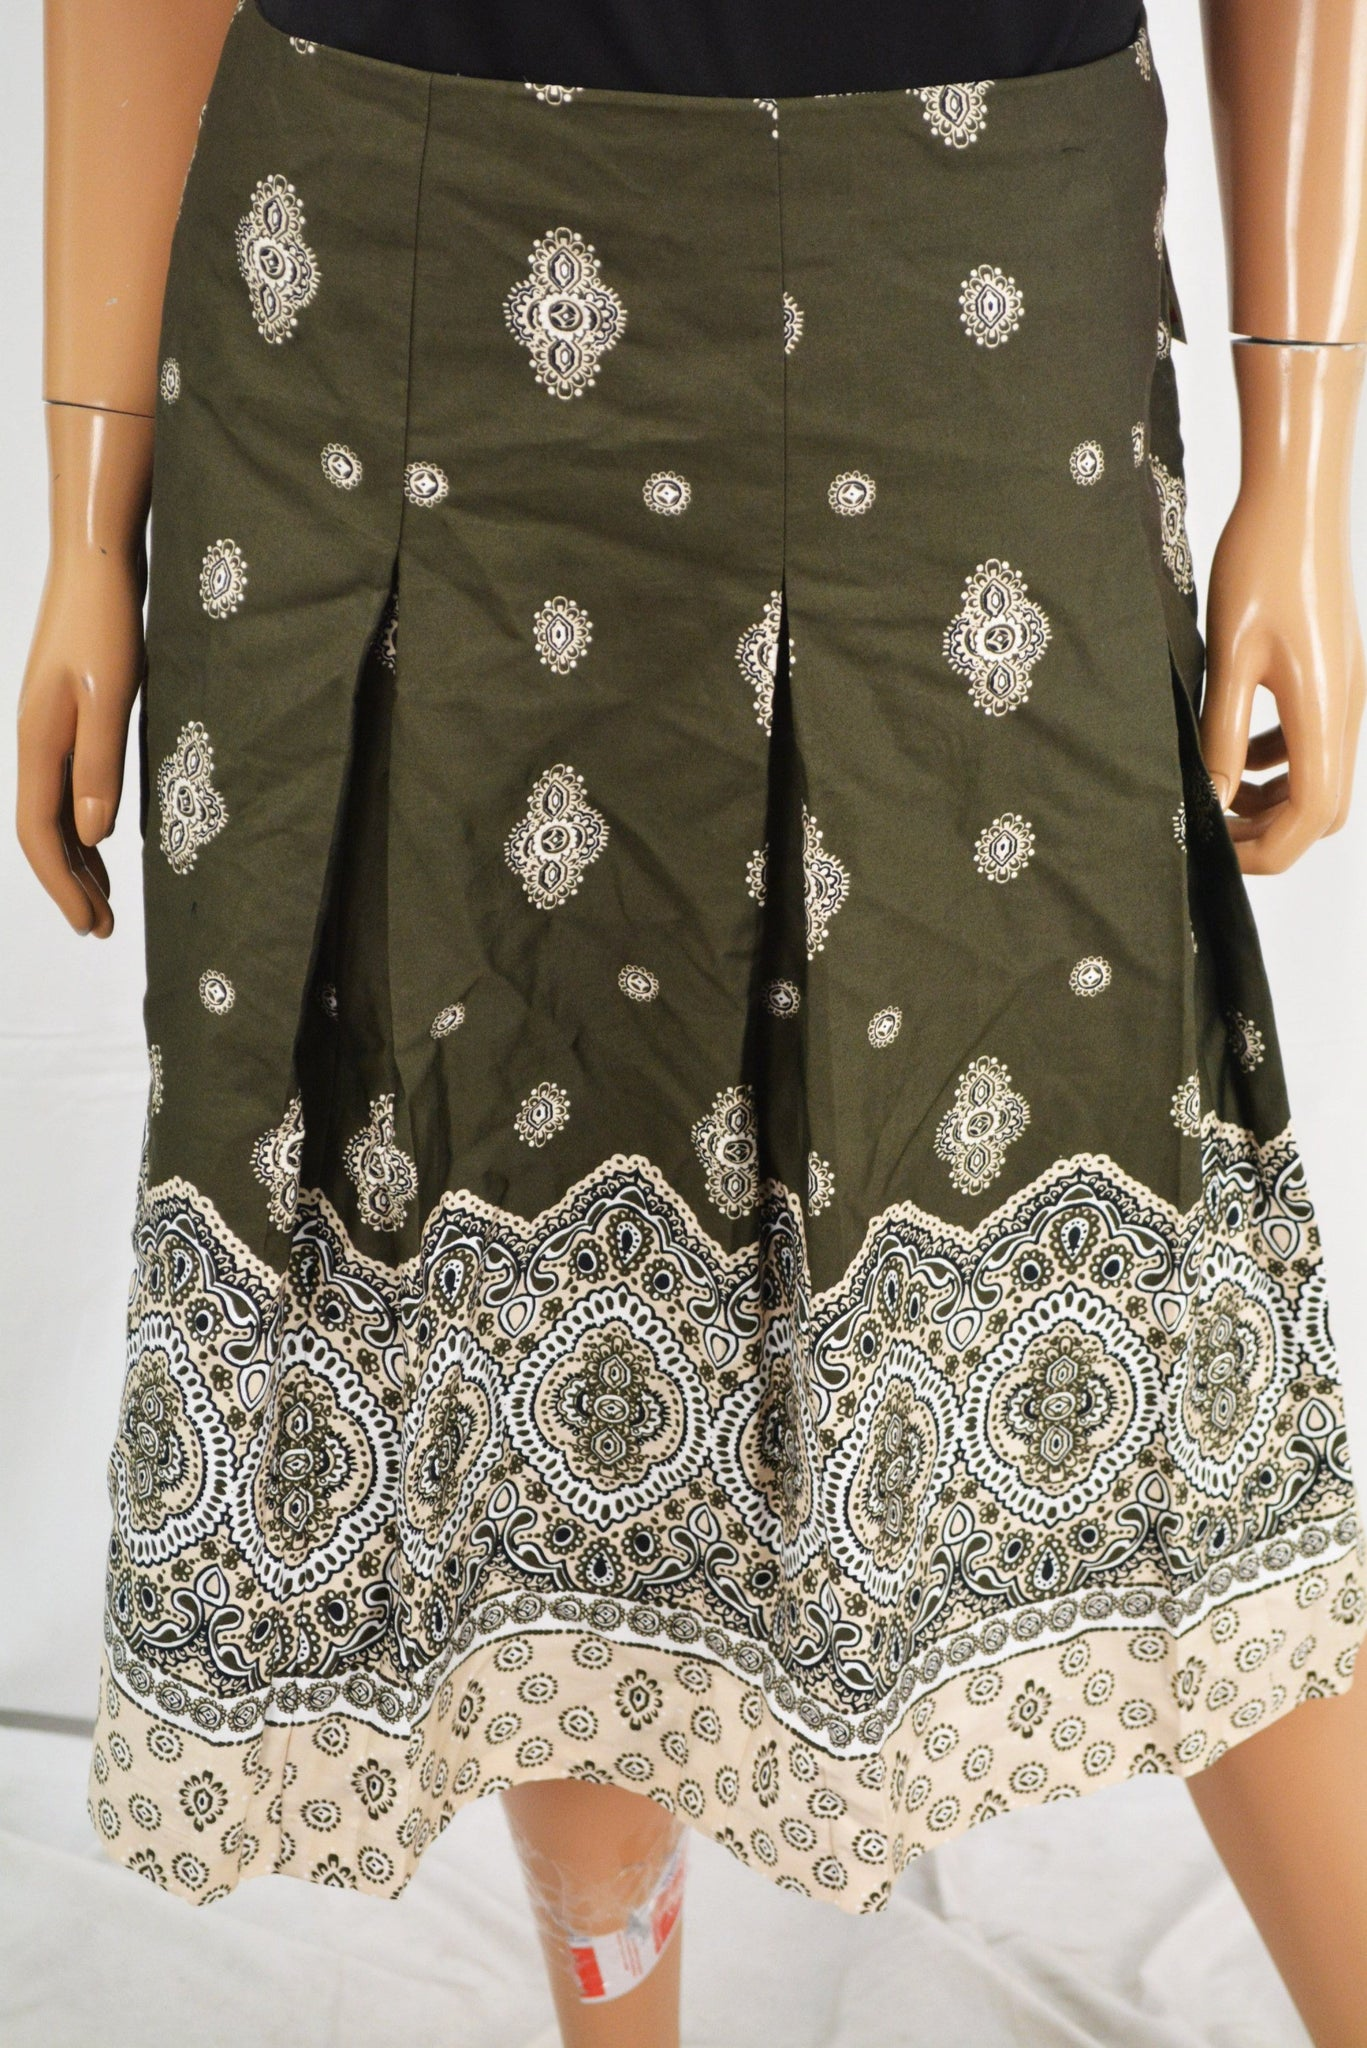 Charter Club Women's Cotton Green Pleated Printed A-Line Skirt 10